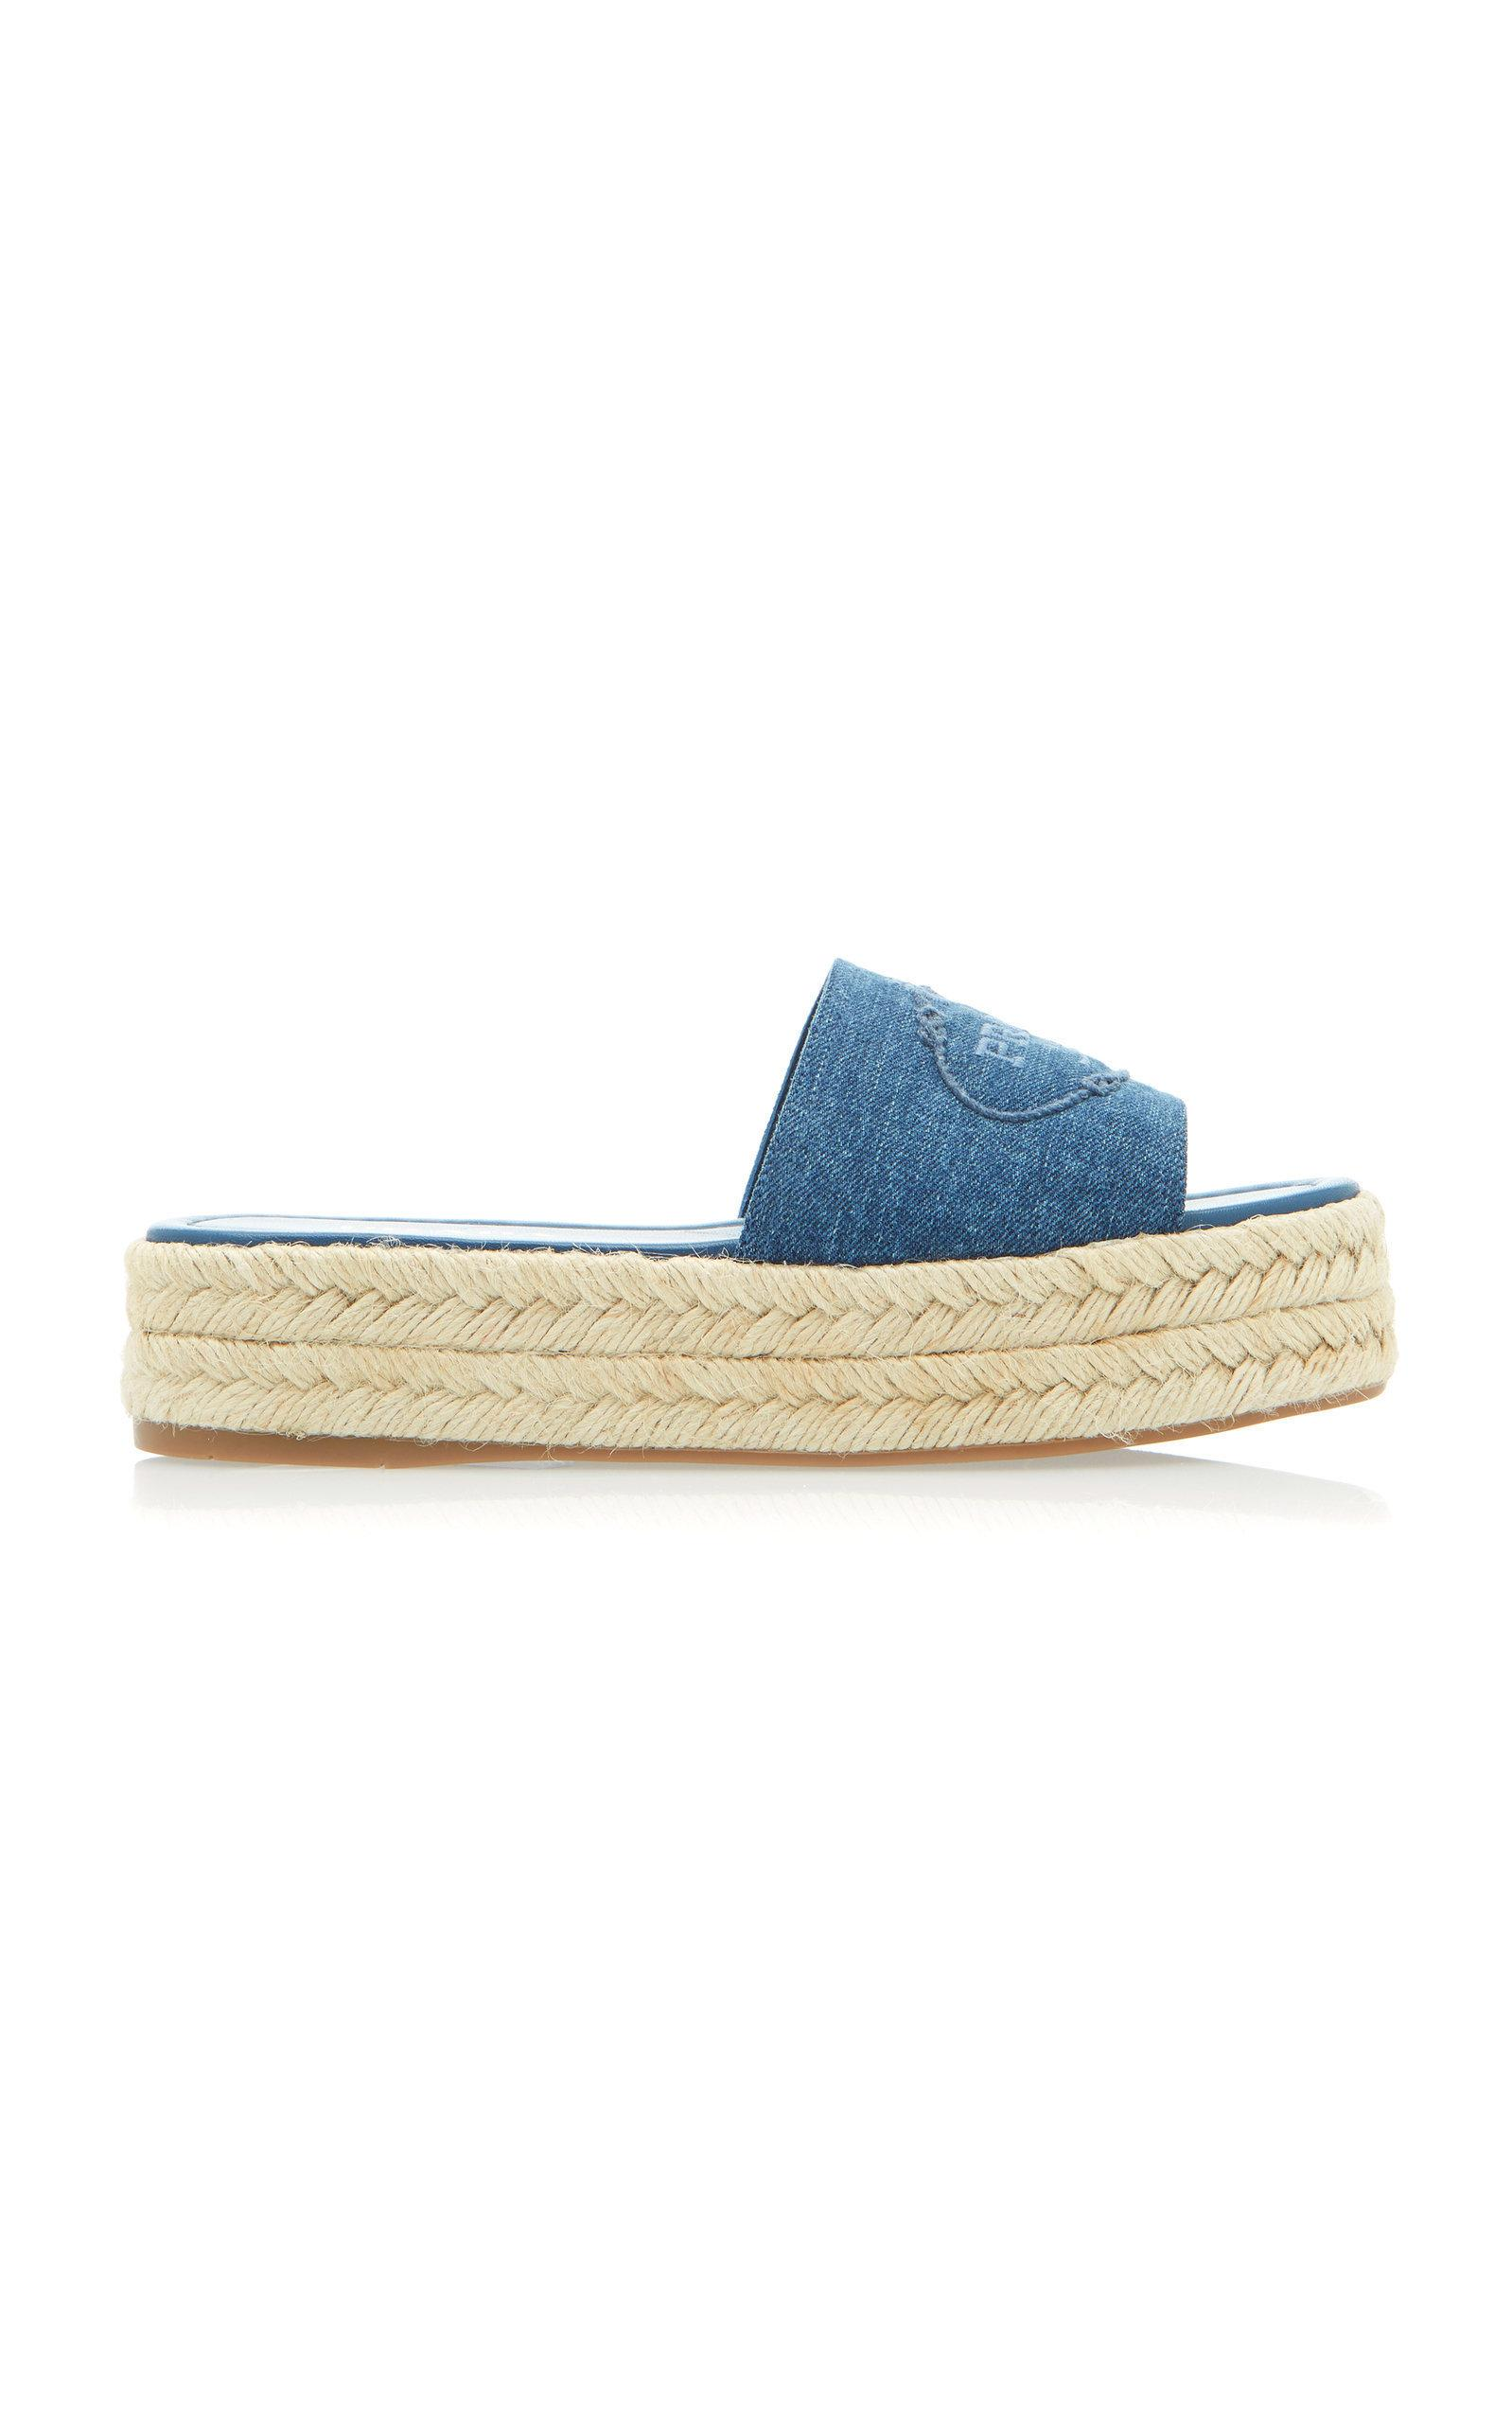 244cf7cbd Prada Embroidered Denim Espadrille Platform Slides In Mid Denim ...